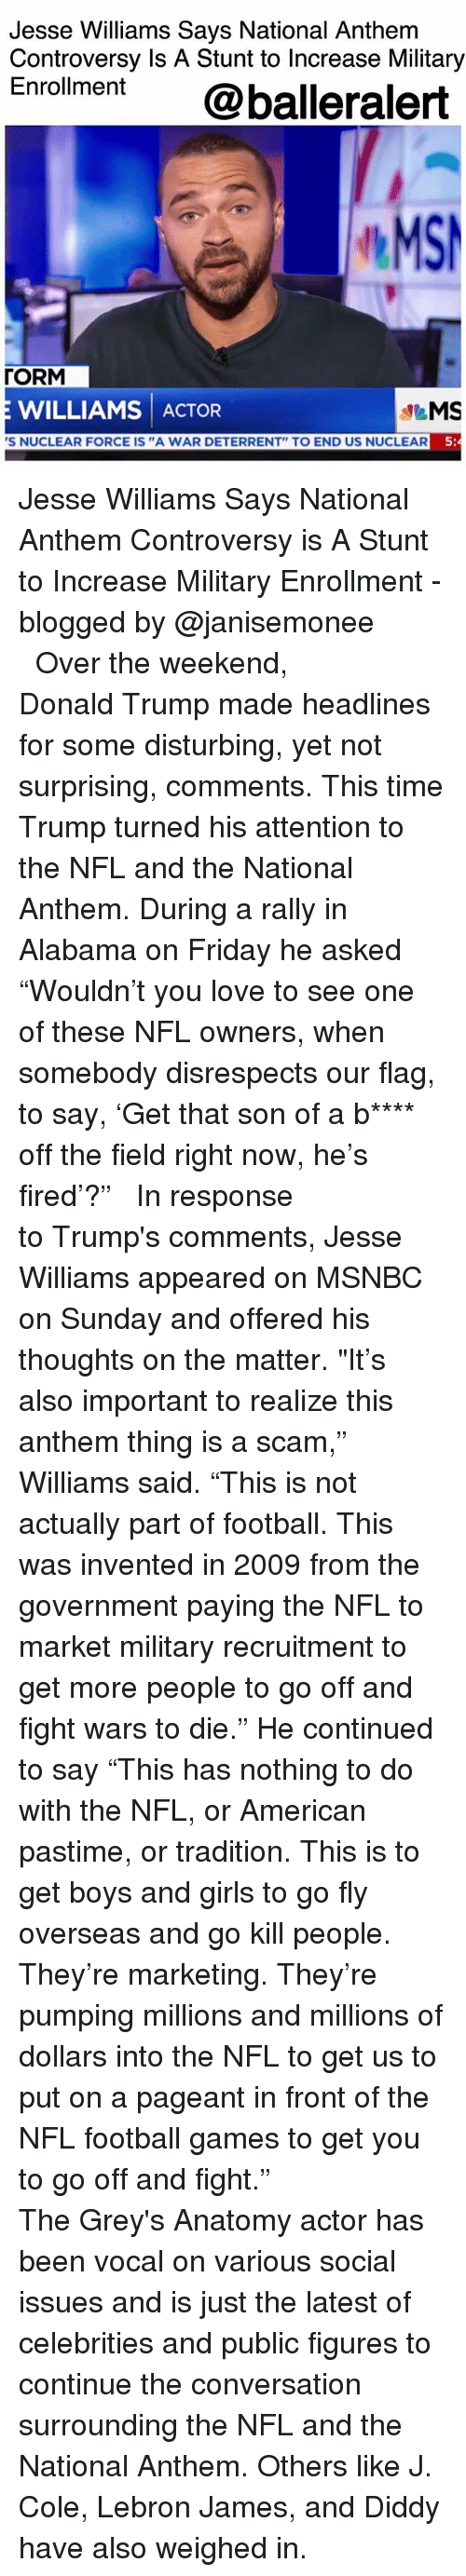 """Nfl Football: Jesse Williams Says National Anthem  Controversy Is A Stunt to Increase Military  Enroment @balleralert  MS  「ORM  E WILLIAMS ACTOR  S NUCLEAR FORCE IS """"A WAR DETERRENT"""" TO END US NUCLEAR  5 Jesse Williams Says National Anthem Controversy is A Stunt to Increase Military Enrollment - blogged by @janisemonee ⠀⠀⠀⠀⠀⠀⠀⠀⠀ ⠀⠀⠀⠀⠀⠀⠀⠀⠀ Over the weekend, Donald Trump made headlines for some disturbing, yet not surprising, comments. This time Trump turned his attention to the NFL and the National Anthem. During a rally in Alabama on Friday he asked """"Wouldn't you love to see one of these NFL owners, when somebody disrespects our flag, to say, 'Get that son of a b**** off the field right now, he's fired'?"""" ⠀⠀⠀⠀⠀⠀⠀⠀⠀ ⠀⠀⠀⠀⠀⠀⠀⠀⠀ In response to Trump's comments, Jesse Williams appeared on MSNBC on Sunday and offered his thoughts on the matter. """"It's also important to realize this anthem thing is a scam,"""" Williams said. """"This is not actually part of football. This was invented in 2009 from the government paying the NFL to market military recruitment to get more people to go off and fight wars to die."""" He continued to say """"This has nothing to do with the NFL, or American pastime, or tradition. This is to get boys and girls to go fly overseas and go kill people. They're marketing. They're pumping millions and millions of dollars into the NFL to get us to put on a pageant in front of the NFL football games to get you to go off and fight."""" ⠀⠀⠀⠀⠀⠀⠀⠀⠀ ⠀⠀⠀⠀⠀⠀⠀⠀⠀ The Grey's Anatomy actor has been vocal on various social issues and is just the latest of celebrities and public figures to continue the conversation surrounding the NFL and the National Anthem. Others like J. Cole, Lebron James, and Diddy have also weighed in."""